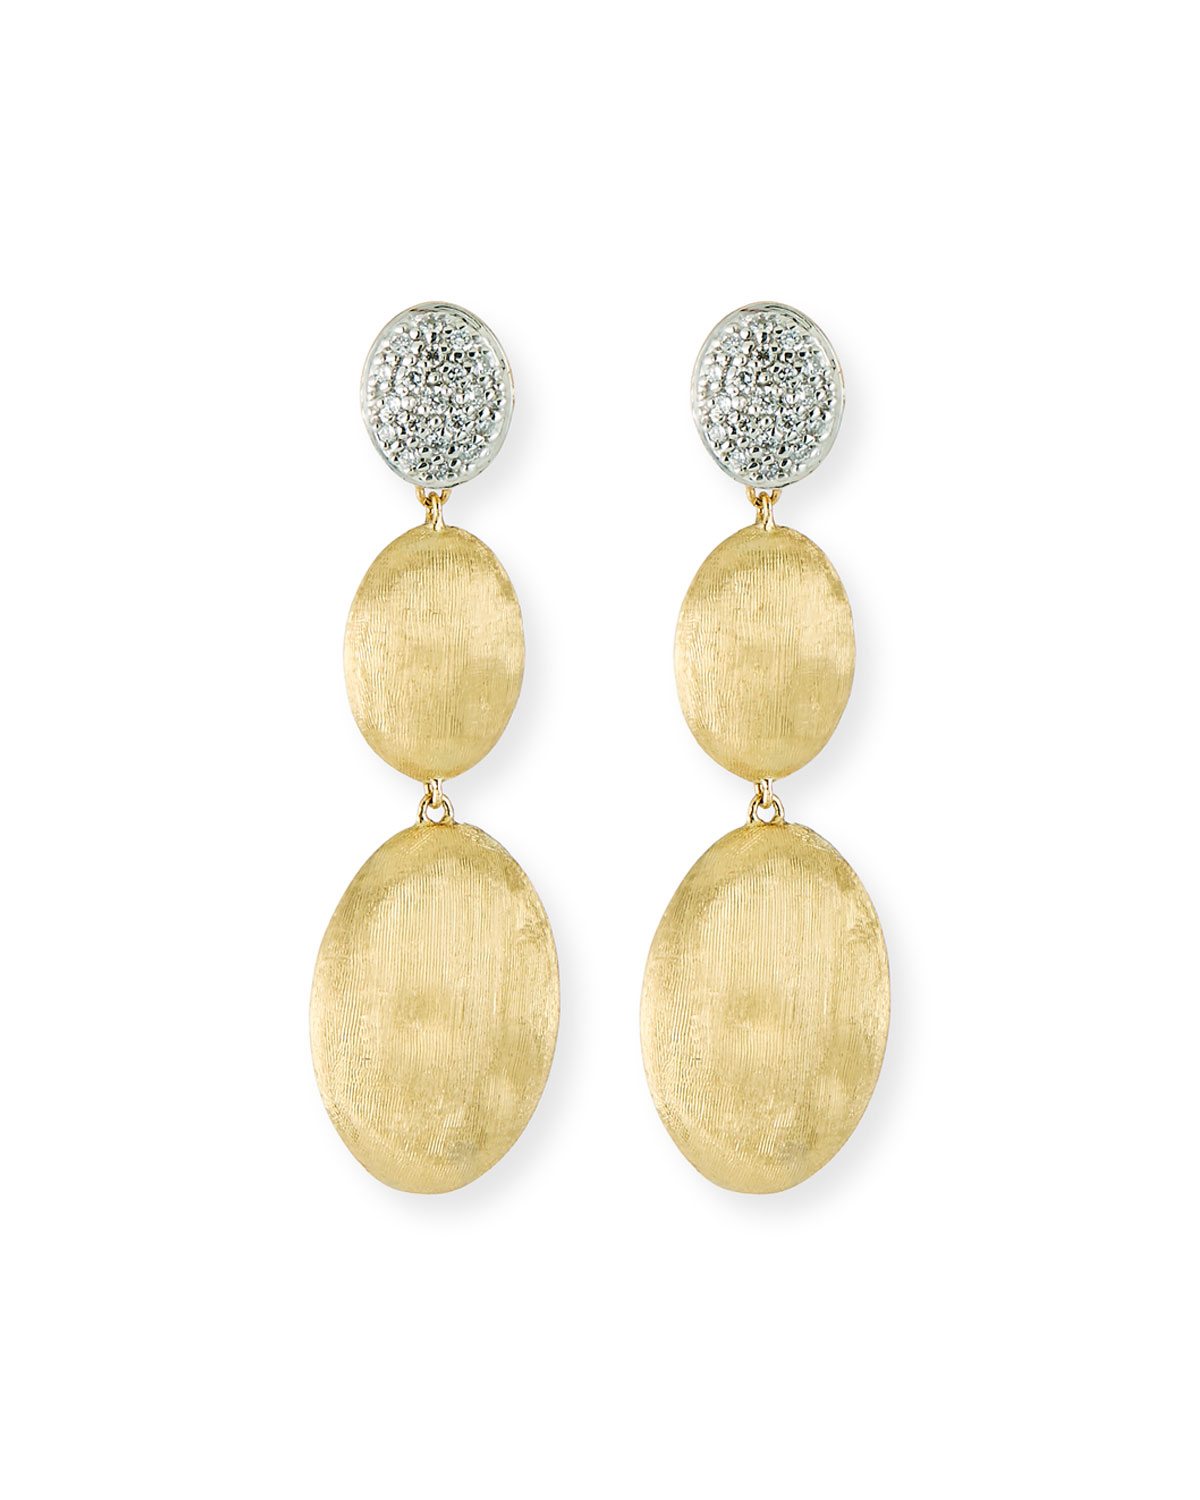 Marco Bicego Siviglia Large 3-Drop Earrings with Diamonds